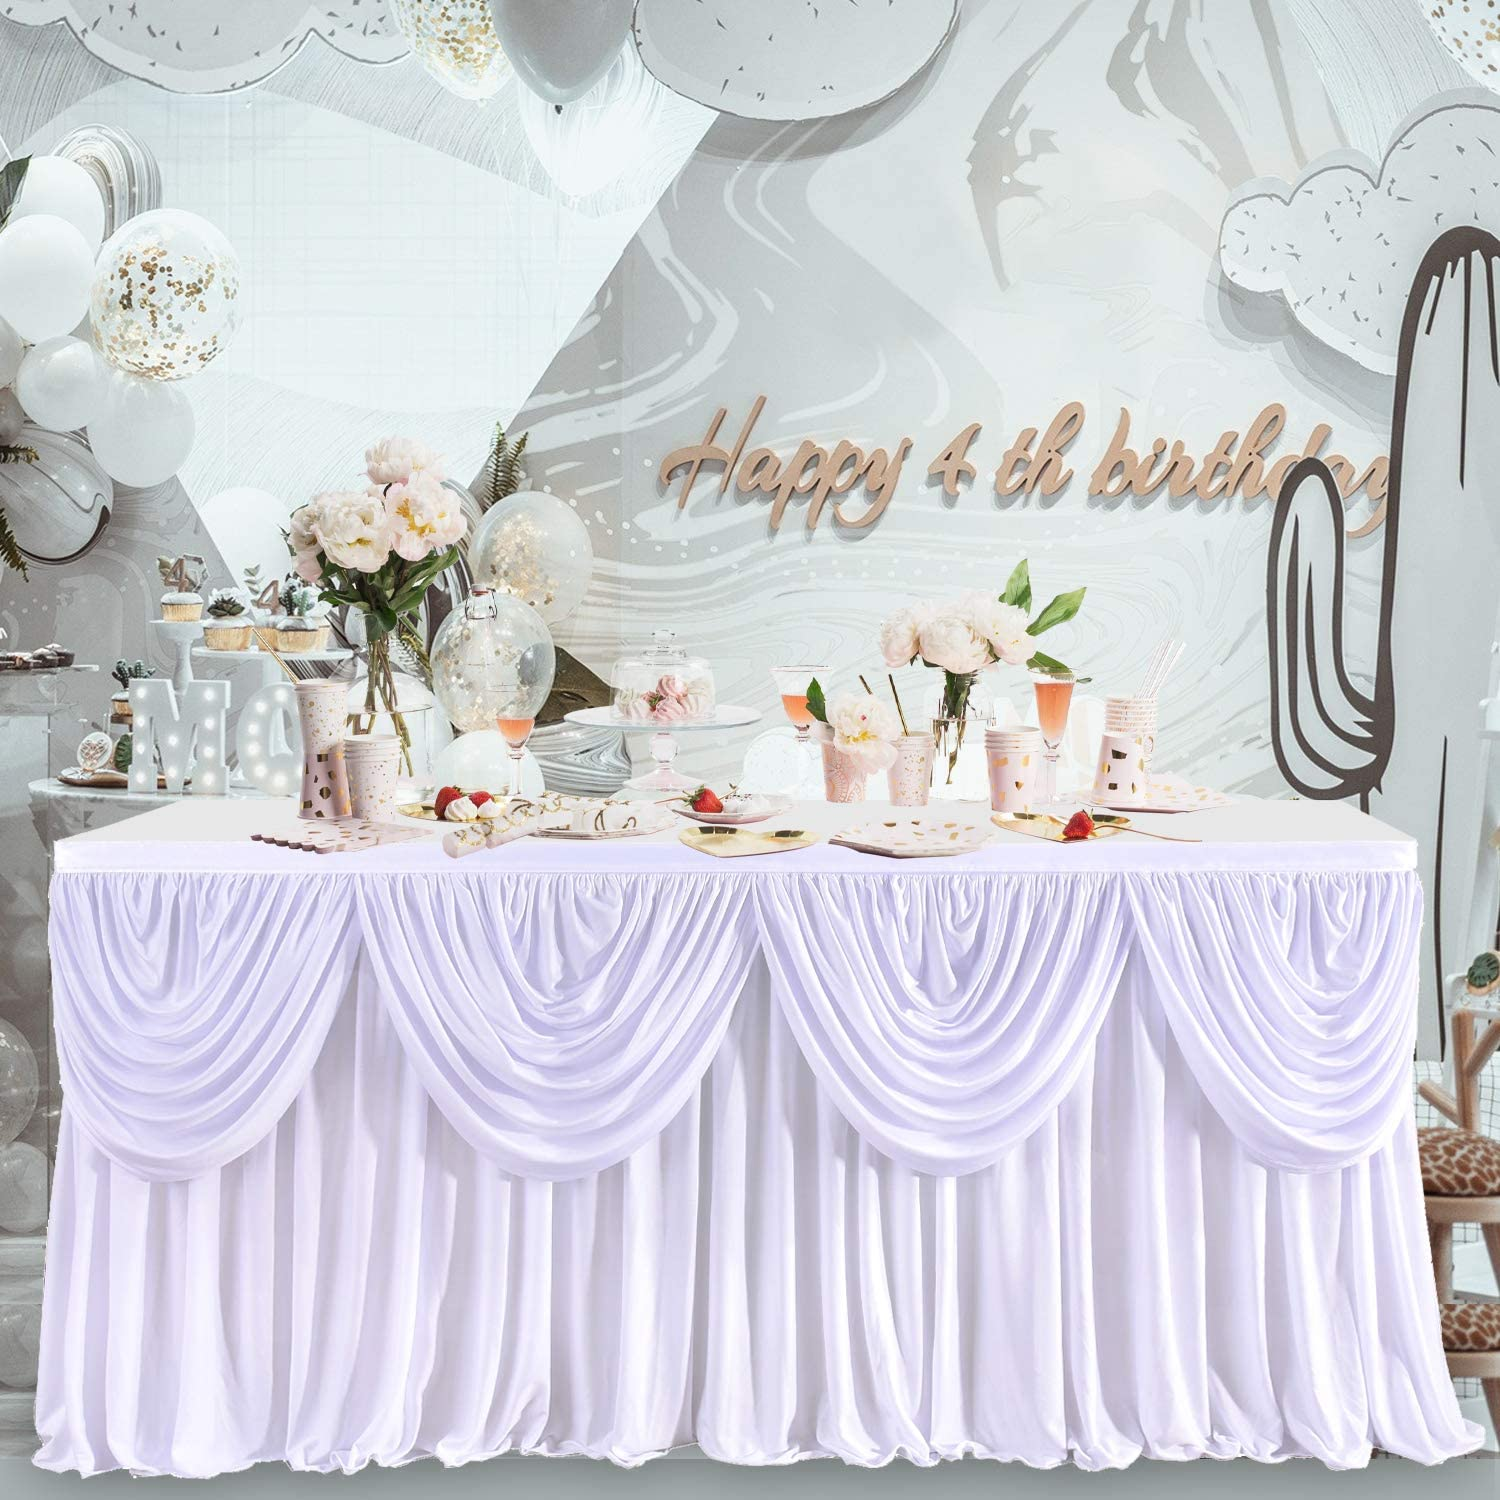 HB HBB MAGIC White Polyester Pleated Table Skirt for Rectangle Table Swag Drape Ruffle Table Skirt for Wedding Bridal Shower Banquets Baby Shower Anniversary Party 14ft